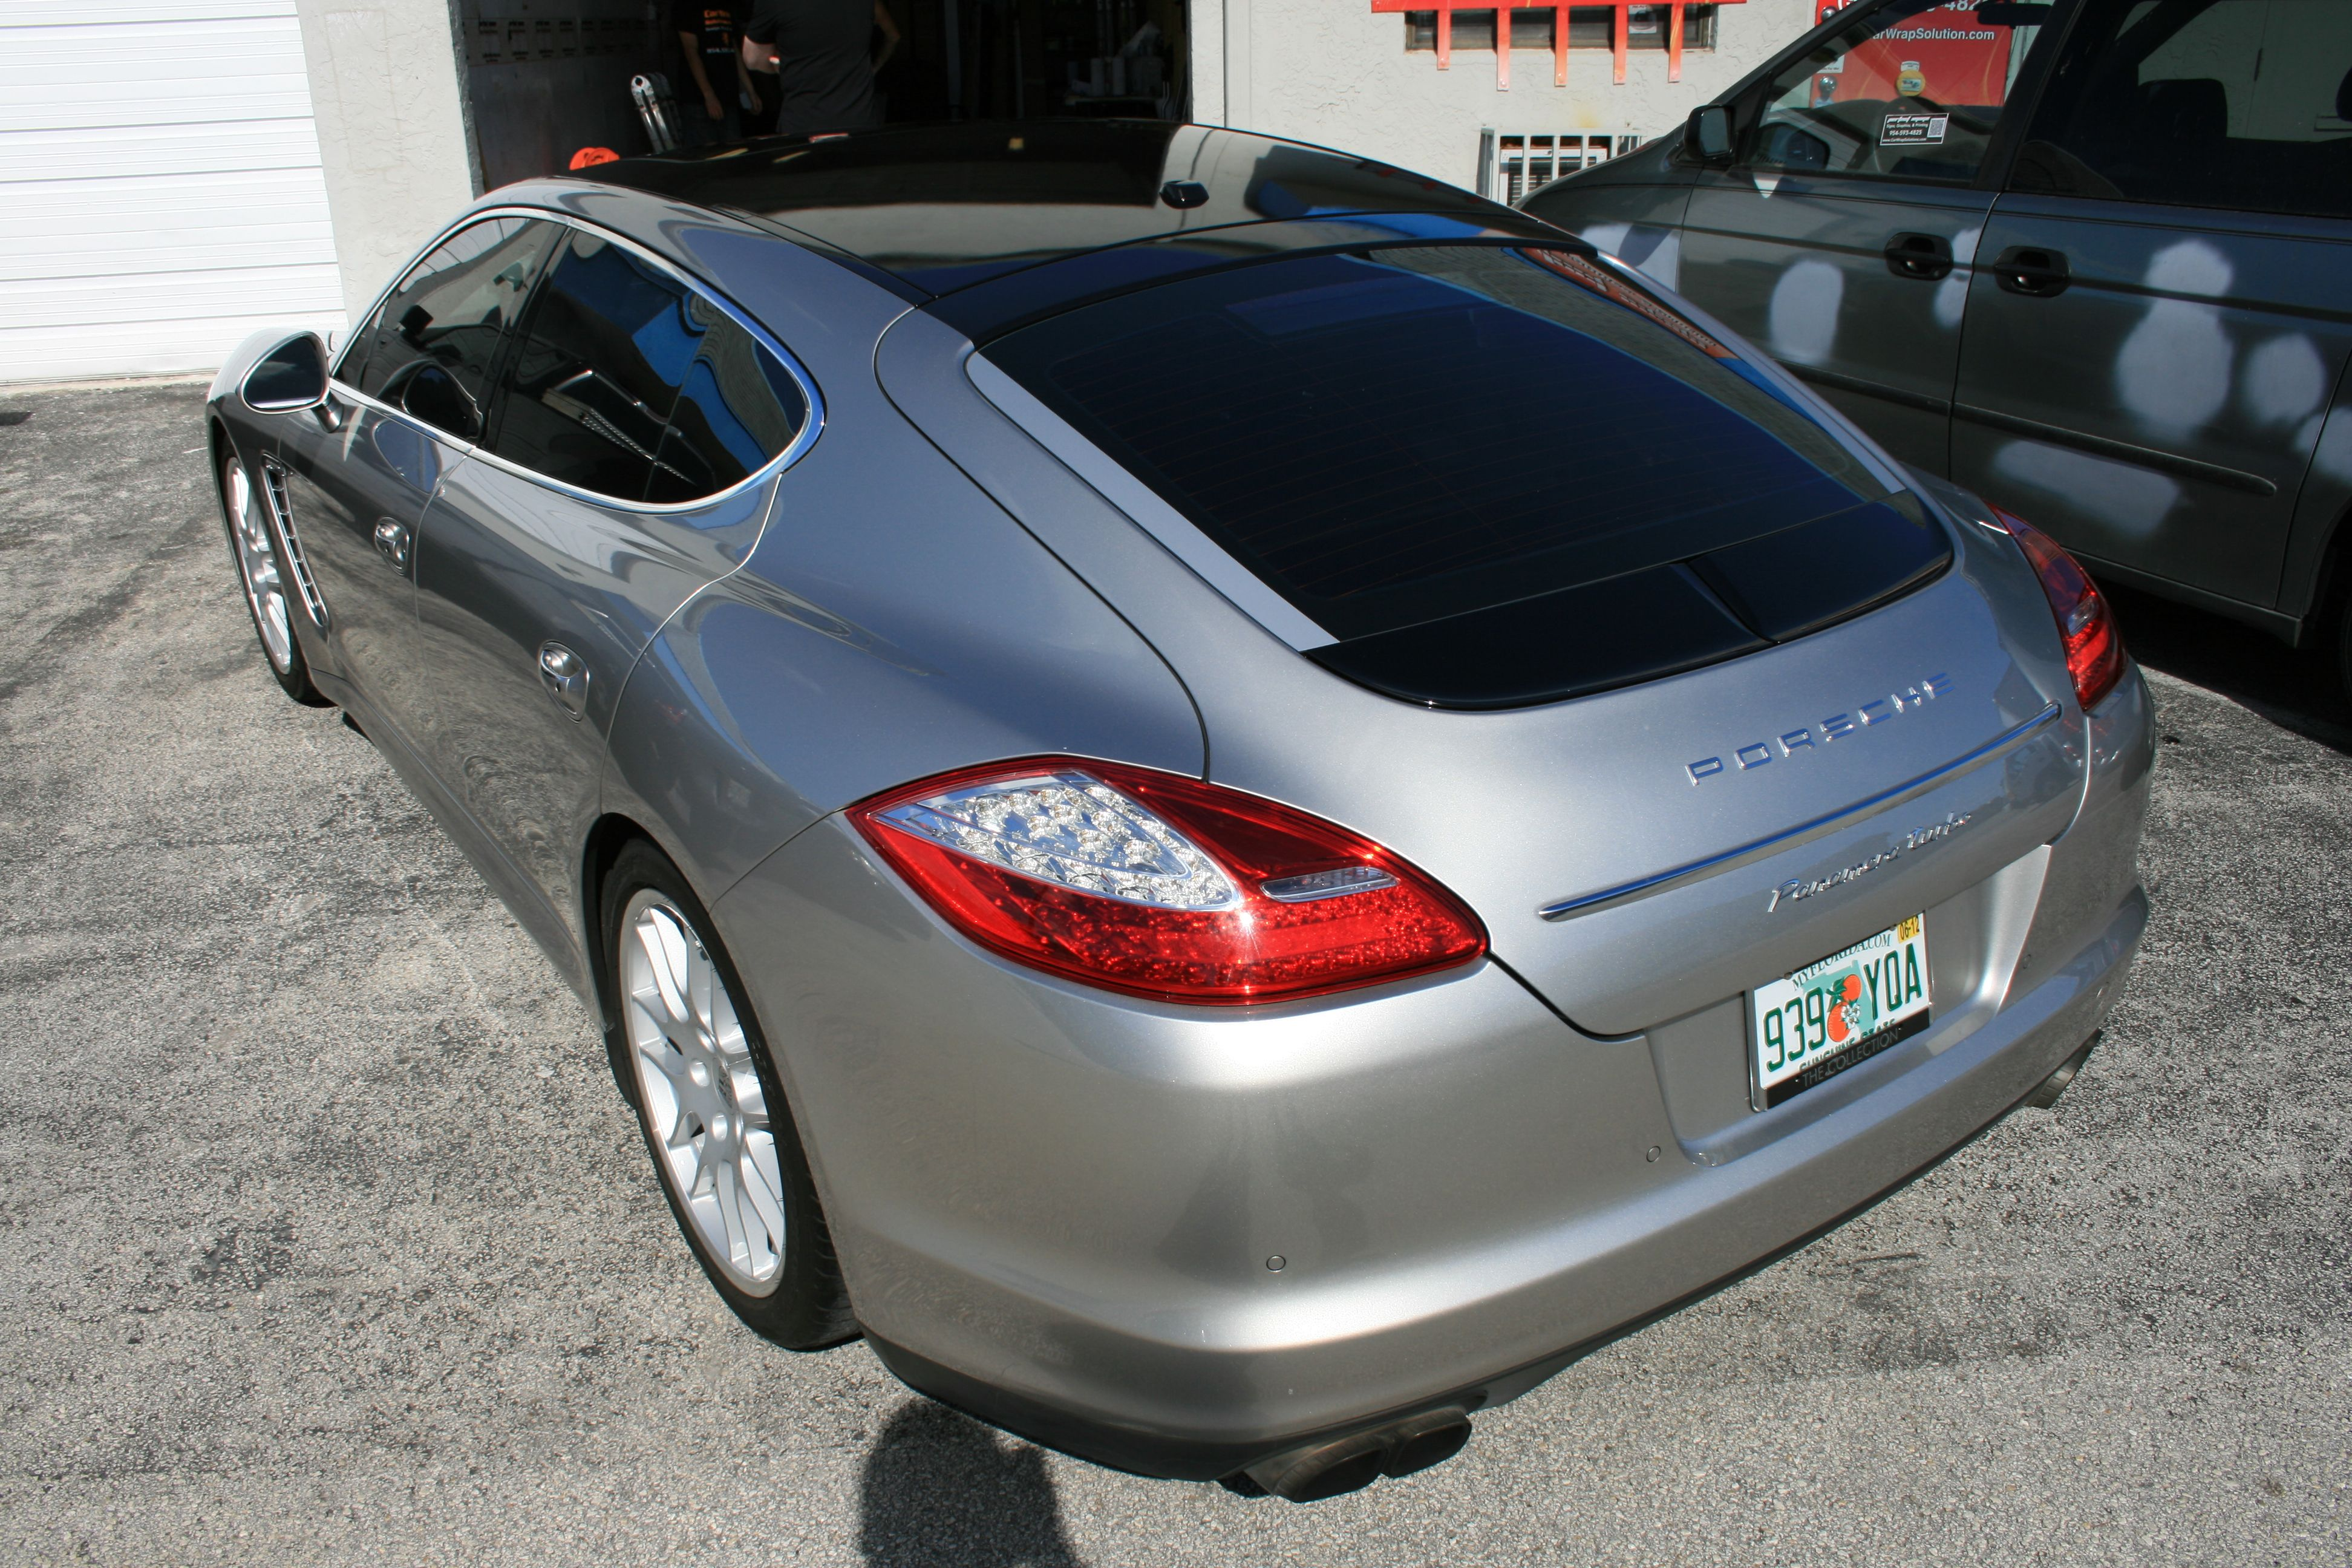 Porsche Panamera Panoramic 3M Scotchprint Vinyl Roof Wrap Miami Florida  Http://carwrapsolutions.